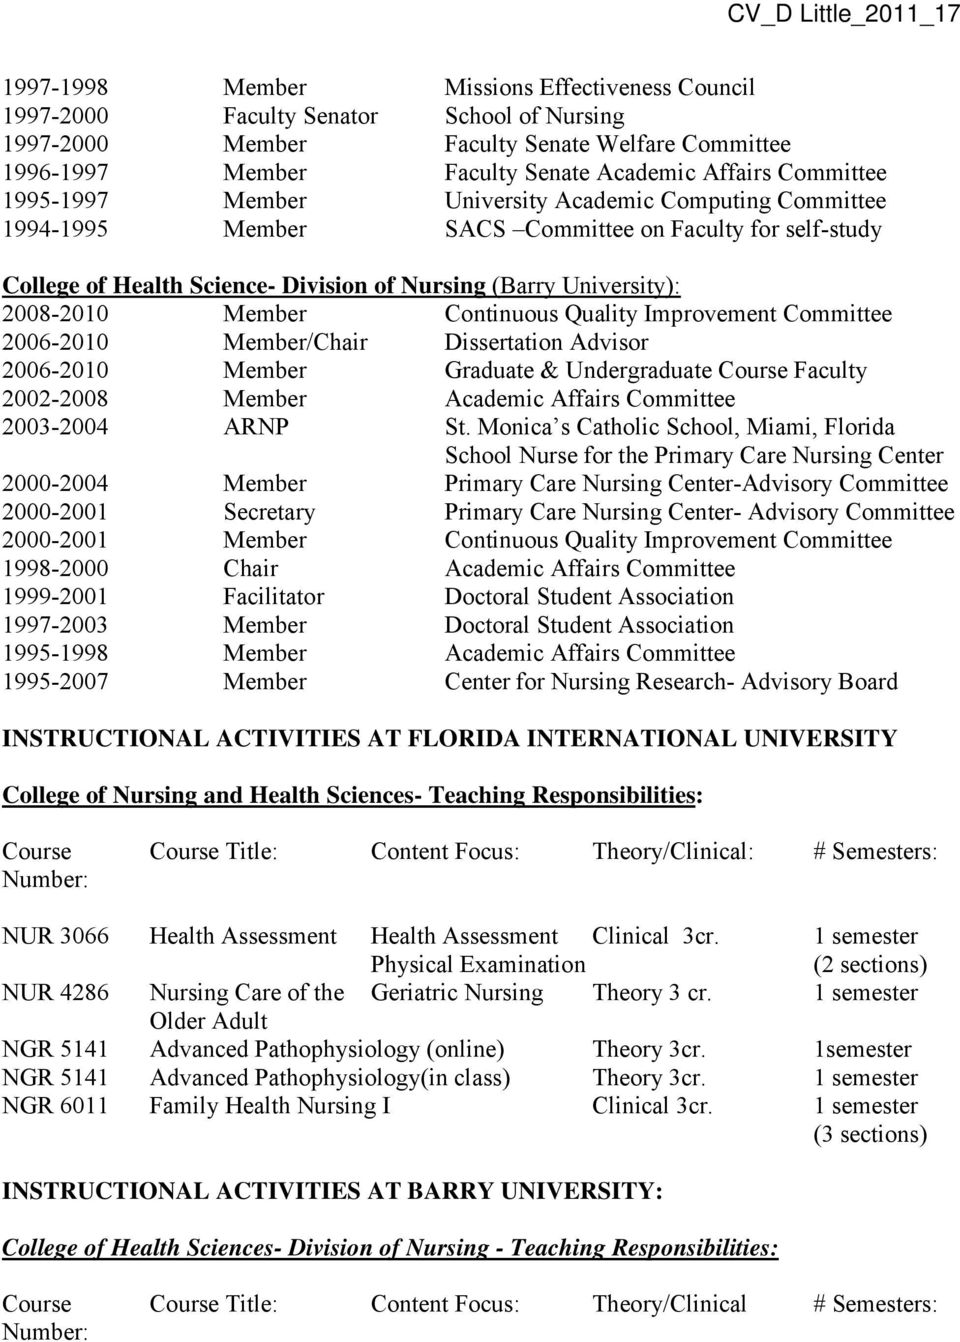 University): 2008-2010 Member Continuous Quality Improvement Committee 2006-2010 Member/Chair Dissertation Advisor 2006-2010 Member Graduate & Undergraduate Course Faculty 2002-2008 Member Academic